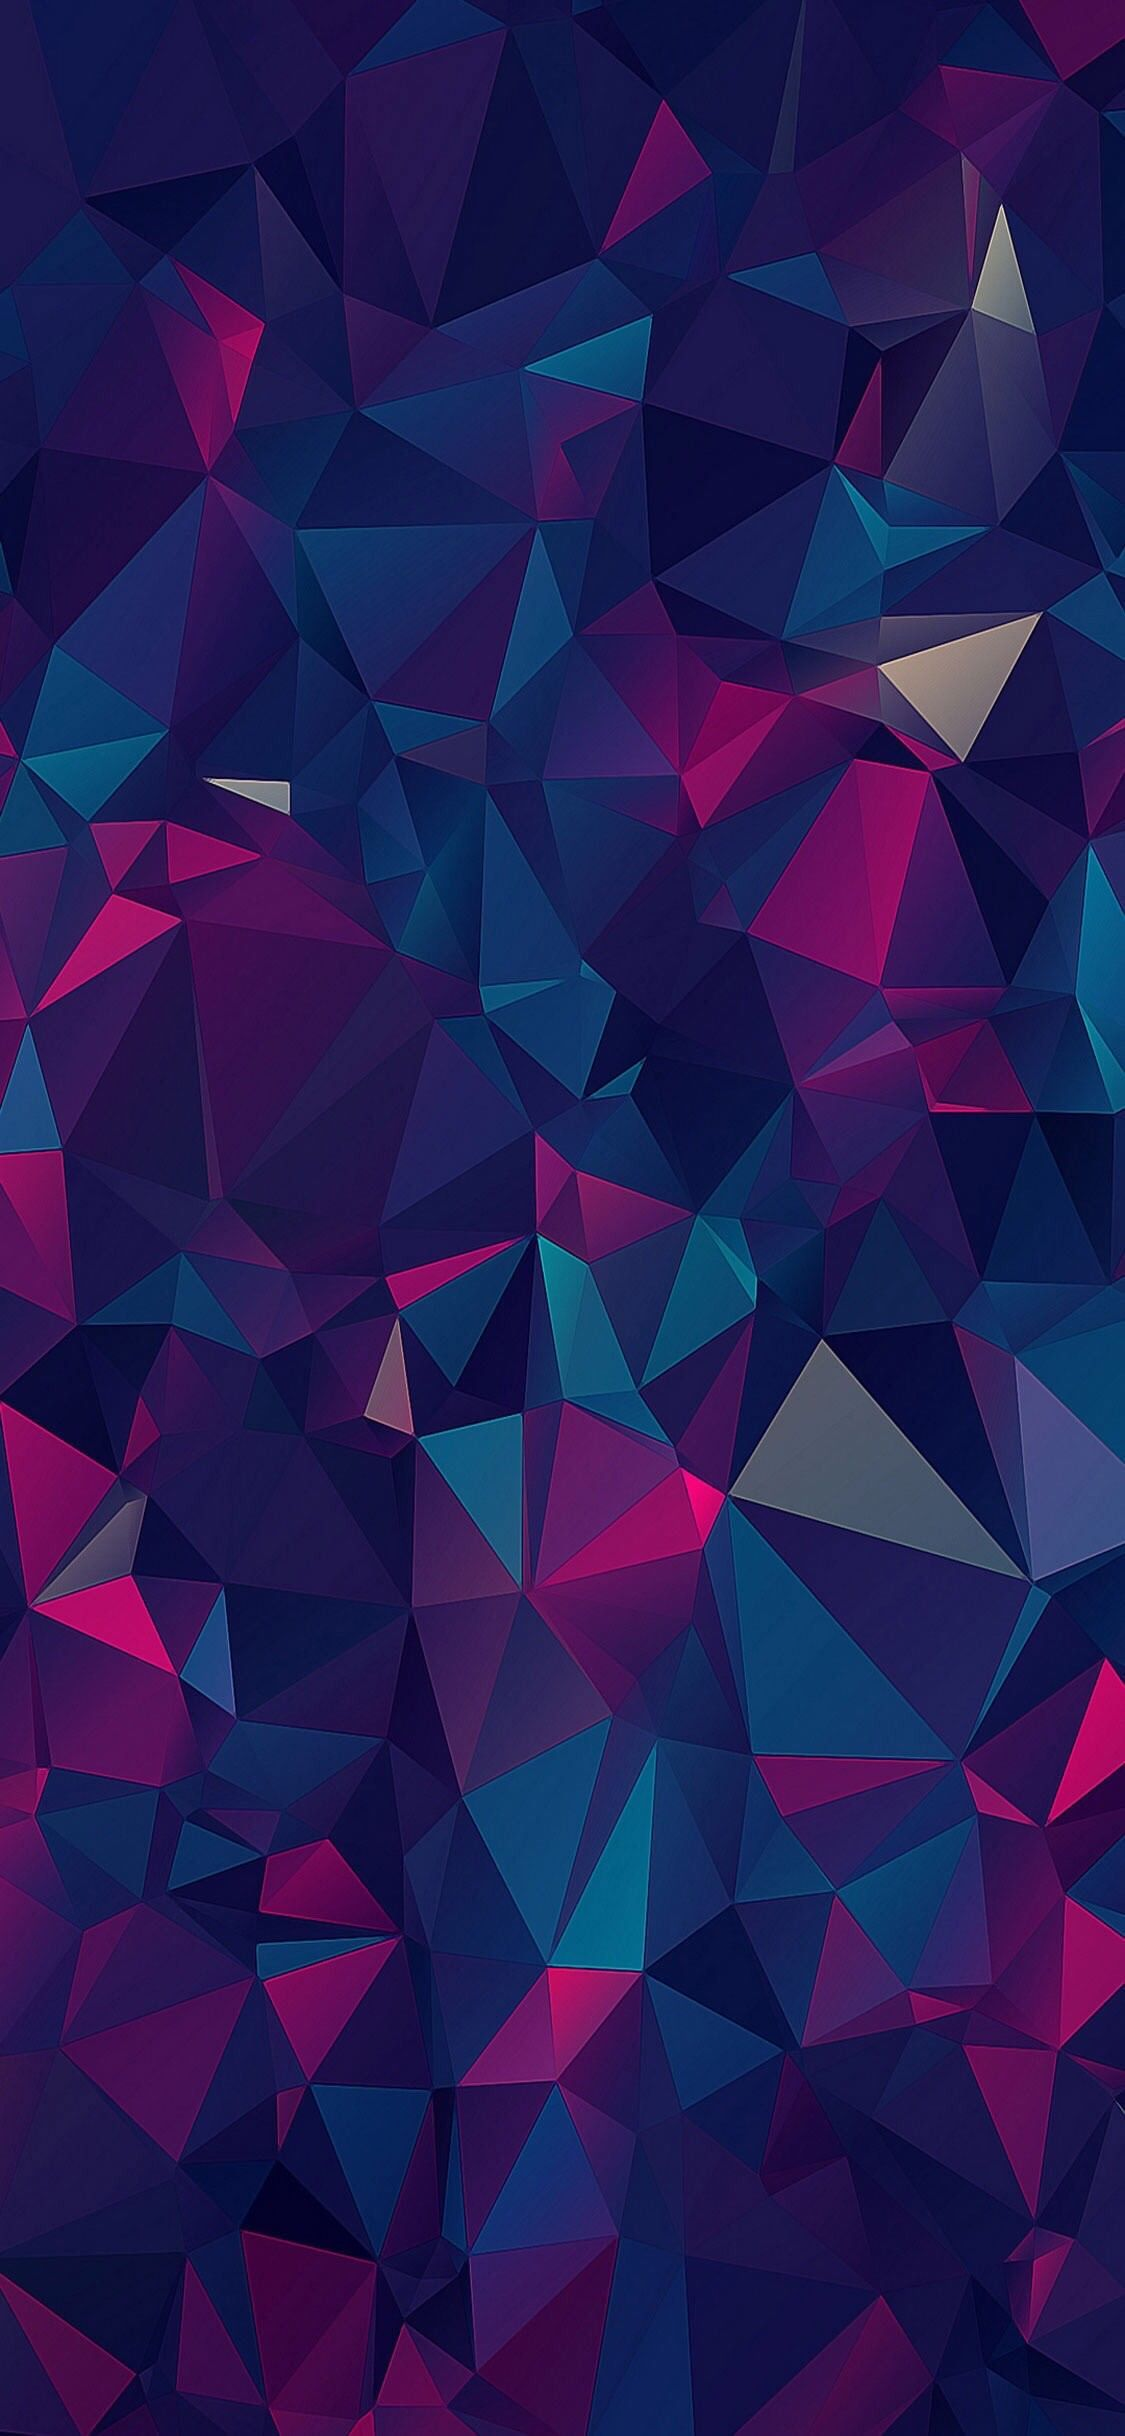 1125x2436 iOS 11, iPhone X, purple, blue, clean, simple, abstract ...